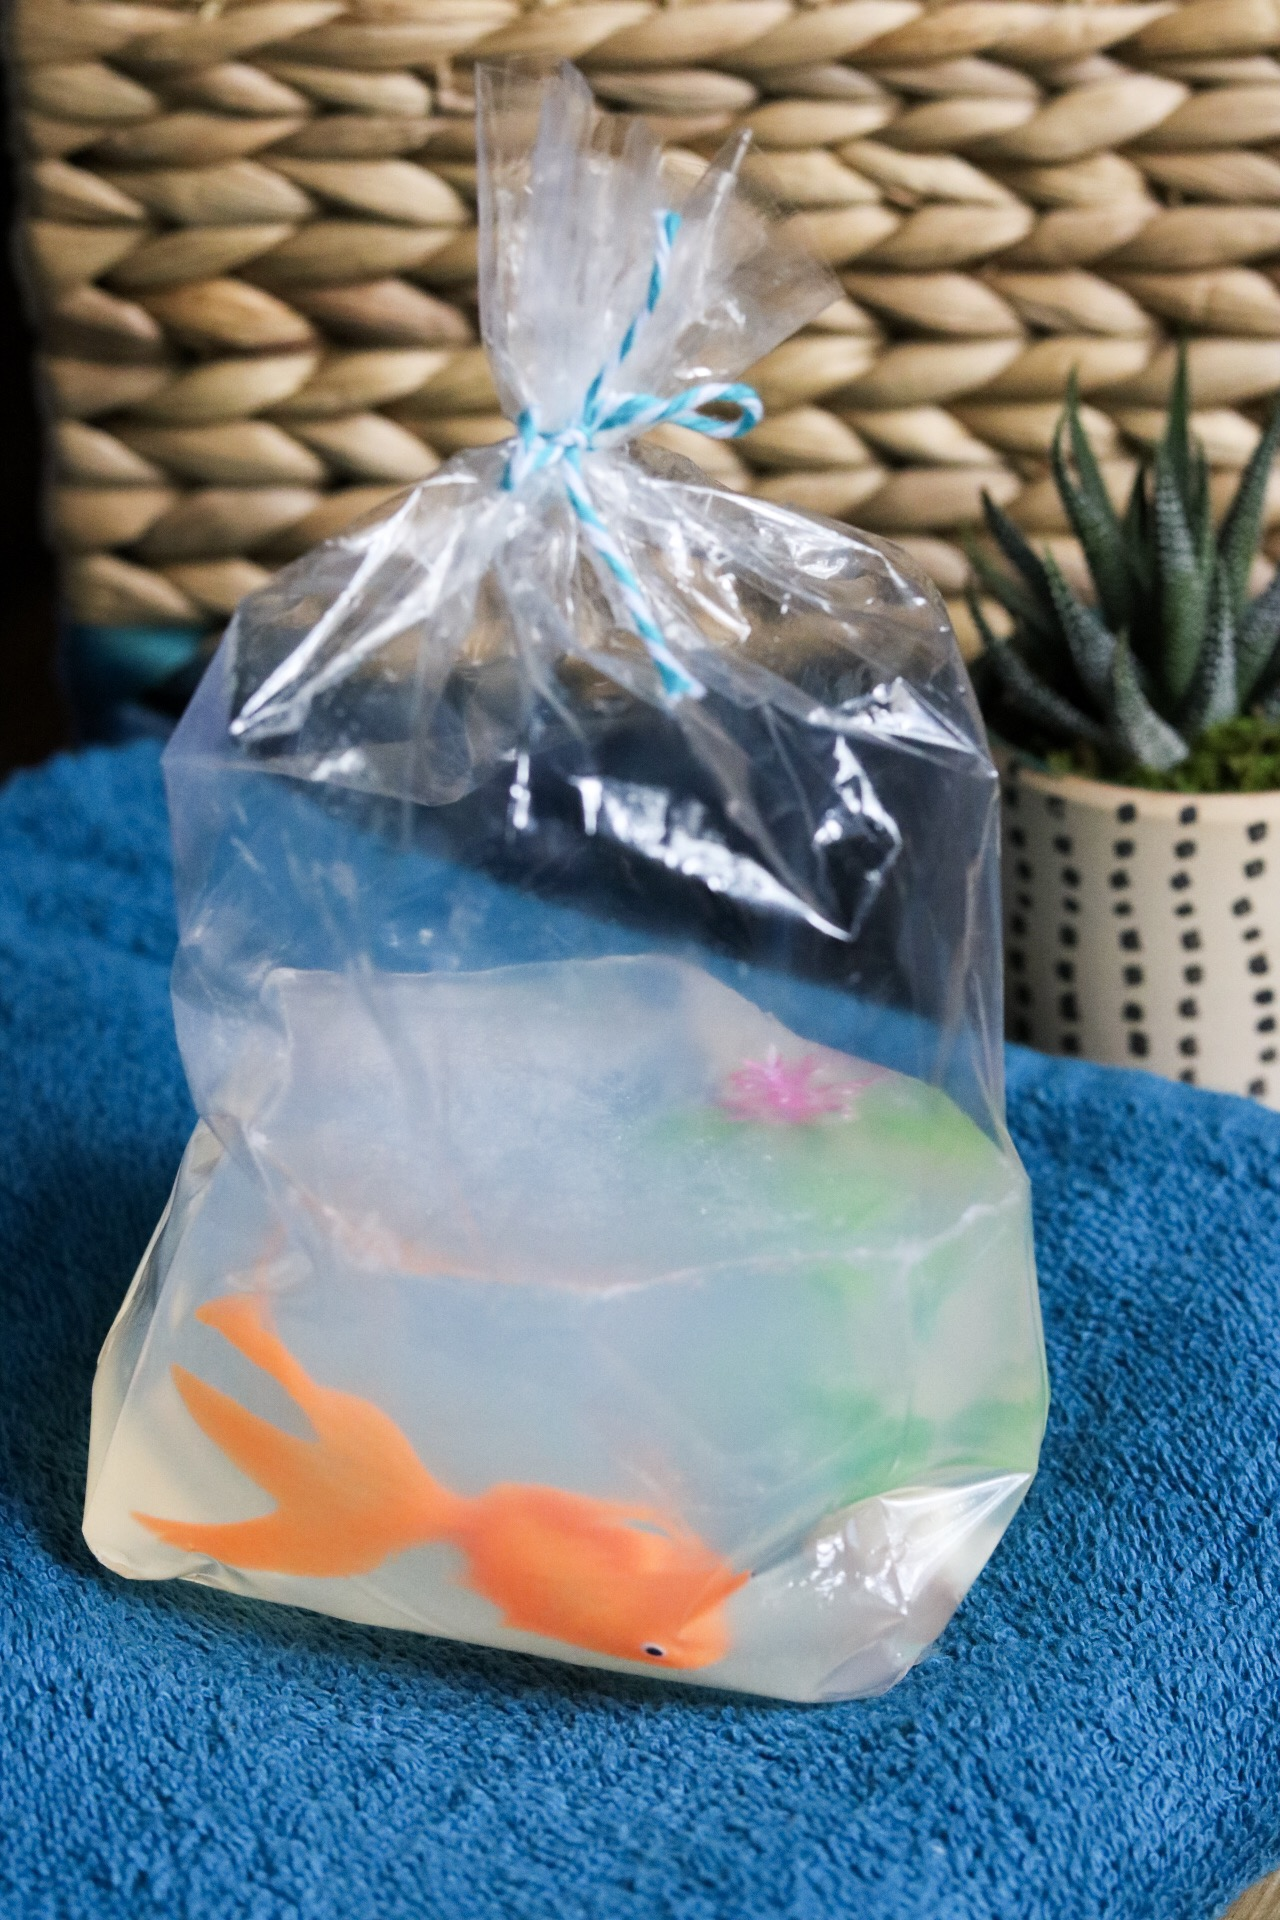 Fish in a Bag Soap DIY #handmadesoap #handmade #goldfish #bathroomdecor #bathroom #soap #fishinabag